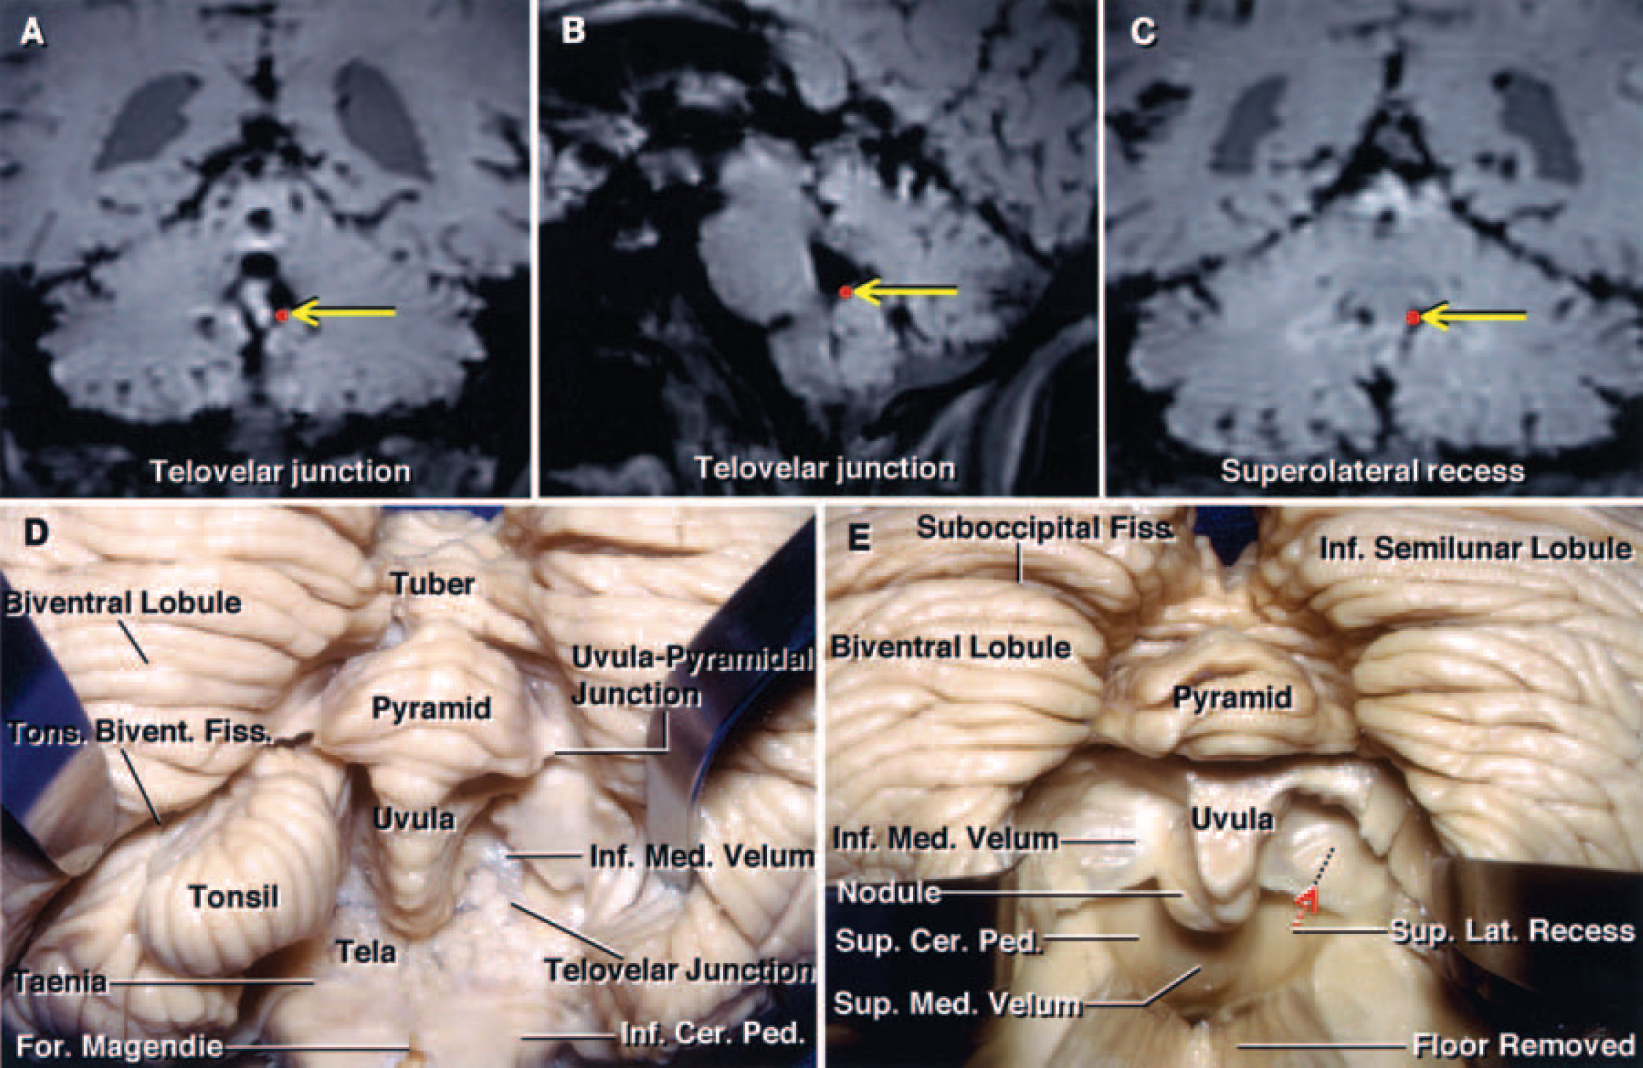 FIG. 2. A–C: Coronal (A and C) and sagittal (B) MR images of a cadaveric brain obtained from the Stealth workstation, demonstrating the location of the telovelar junction (red dotsindicated byyellow arrowsin A and B) and the superolateral recess (red dotindicated byyellow arrowin C). D and E: Photographs of cadaveric brain specimens showing the stepwise dissection of the suboccipital surface of the cerebellum and the inferior portion of the fourth ventricle. D: The left biventral lobule has been retracted to show the tonsillobiventral fissure. The right tonsil has been removed by dividing the peduncle of the tonsil located along the superolateral margin of the tonsil. The uvula projects downward between the tonsils, mimicking the anatomy in the oropharynx. The uvulopyramidal junction, the broadest strip of vermis within the posterior cerebellar incisura, limits the lateral retraction of the tonsils. The telovelar junction is the line of attachment of the tela to the velum. E: Both tonsils and part of the floor have been removed to expose the superior medullary velum and the superolateral recess. The inferior medullary velum is a thin bilateral layer of neural tissue that extends from the nodule medially and blends into the dorsal margin of each lateral recess, forming the peduncle of each flocculus laterally. The incision through the inferior portion of the vermis during the transvermian approach exposes the underlying nodule, which must be incised to gain access to the fourth ventricle. This incision through the vermis is limited by the position of the superior medullary velum, which is closely related to the anterior portion of the nodule. The superior medullary velum forms the medial part of the superior half of the roof and expands laterally and posteriorly from the aqueduct to the level of the fastigium and lateral recess. The superolateral recess, located within the fourth ventricle and lateral to the uvula and nodule, is medial to the superior cerebellar pedu